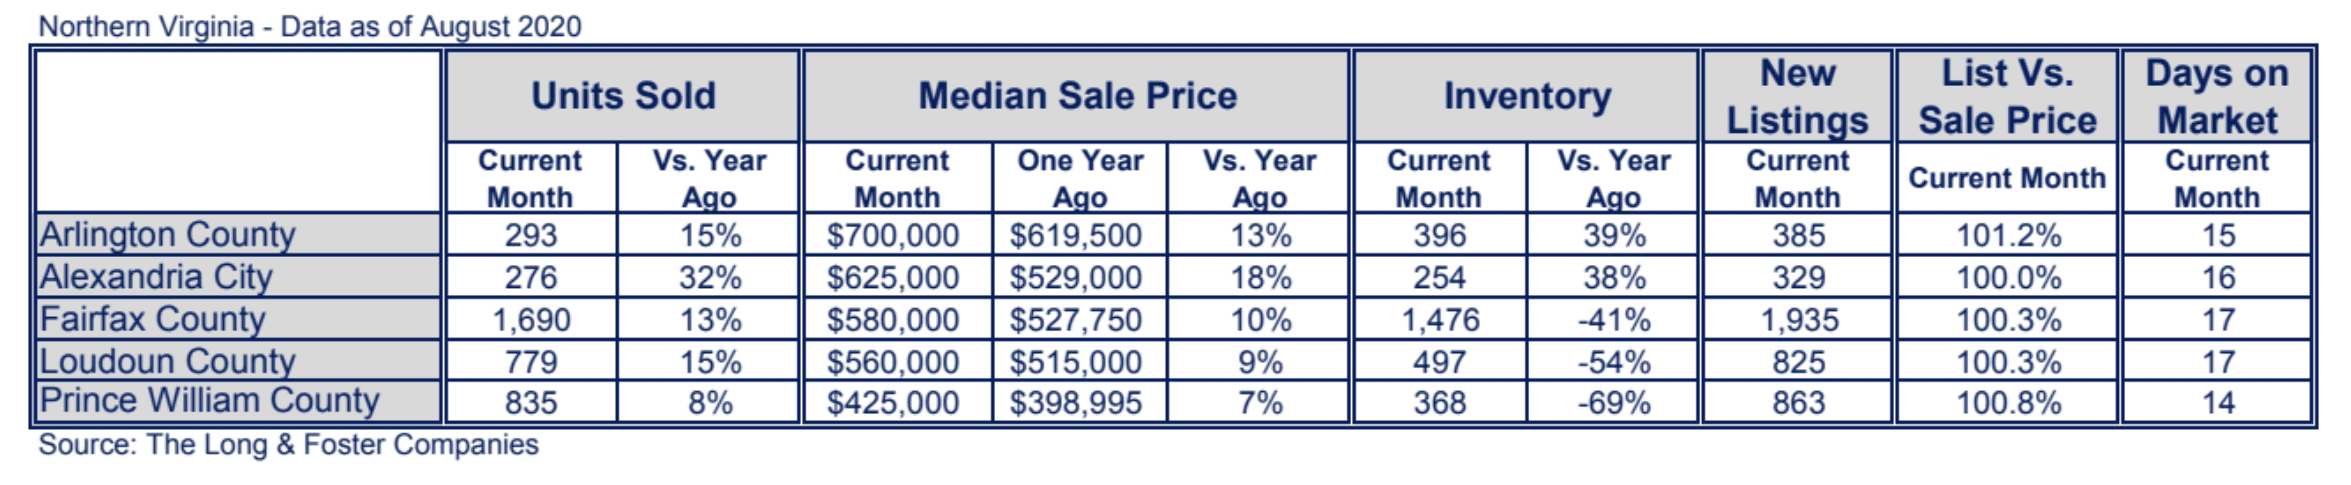 Northern Virginia Market Minute Chart August 2020